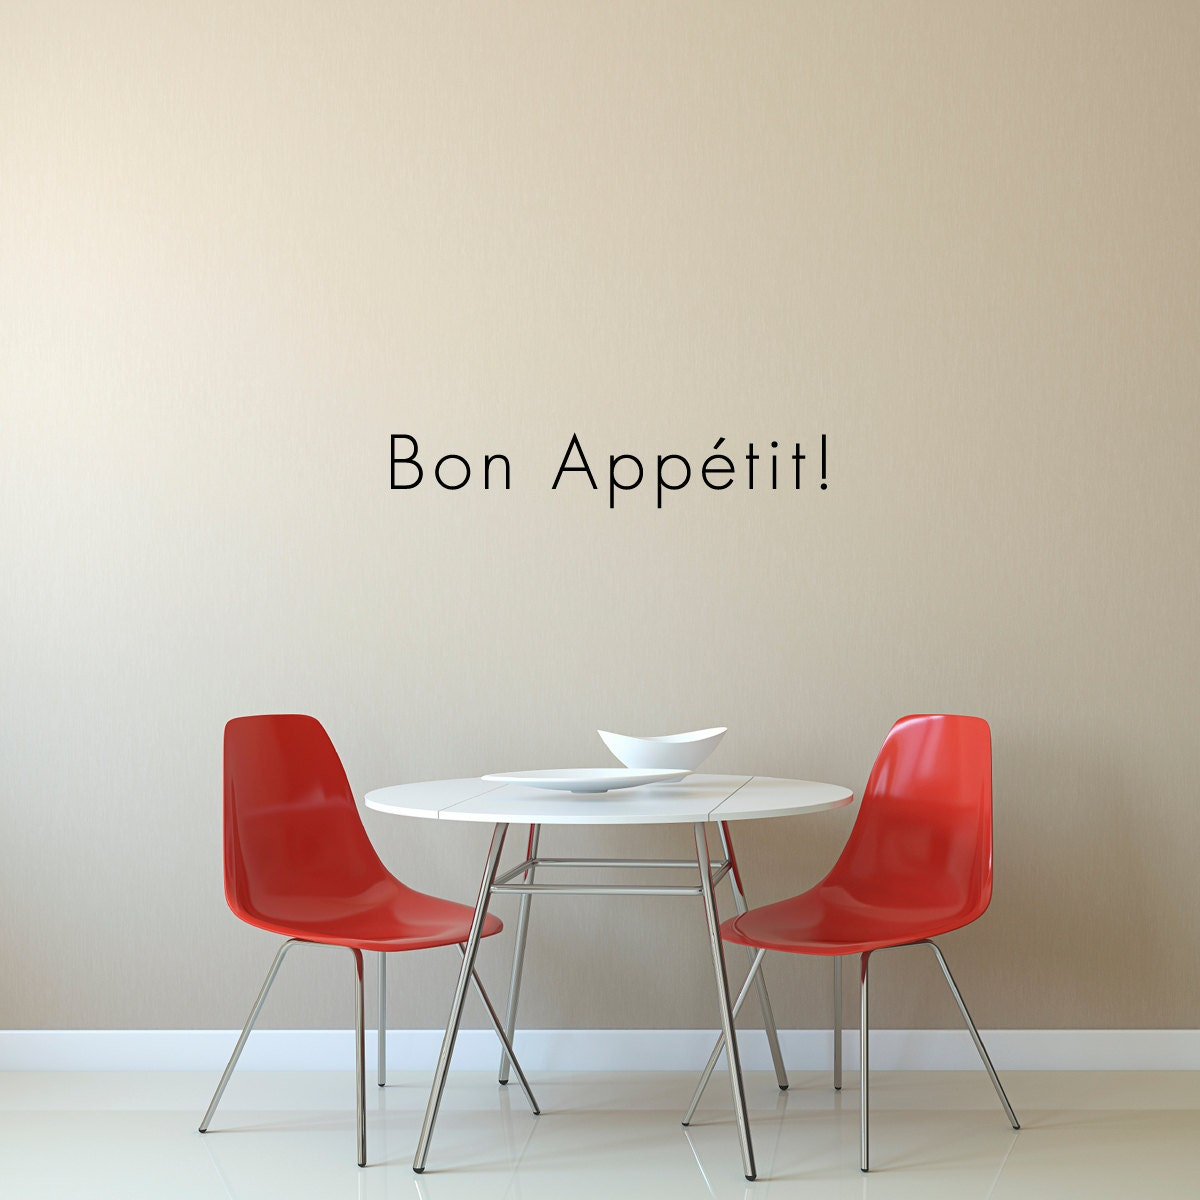 Bon appetit wall decal dining room wall quote sticker for Dining room wall quote decals